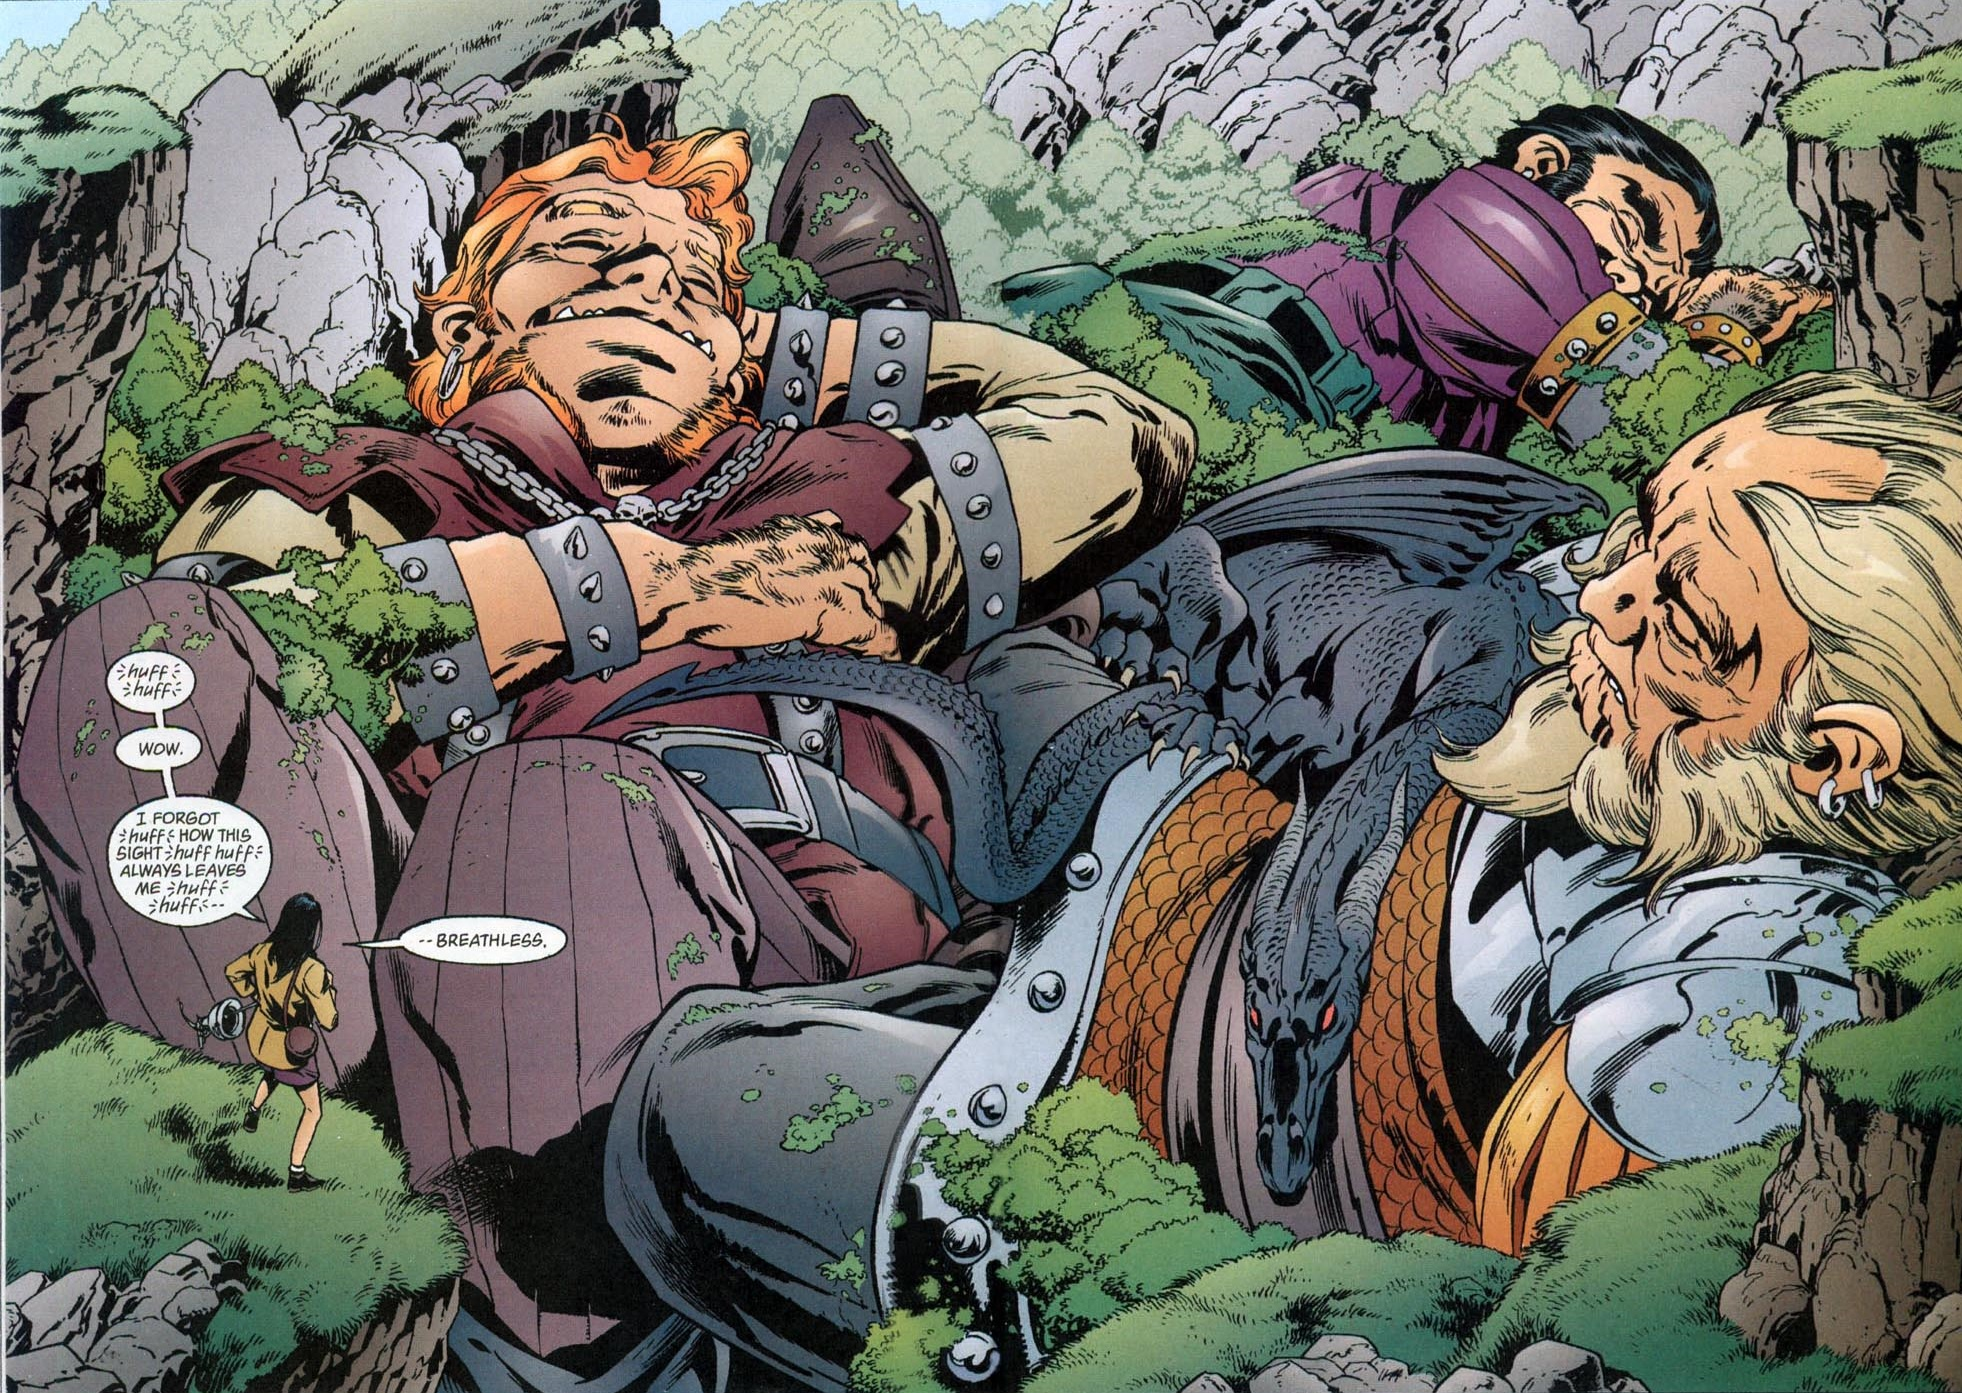 Fables Deluxe 1 review